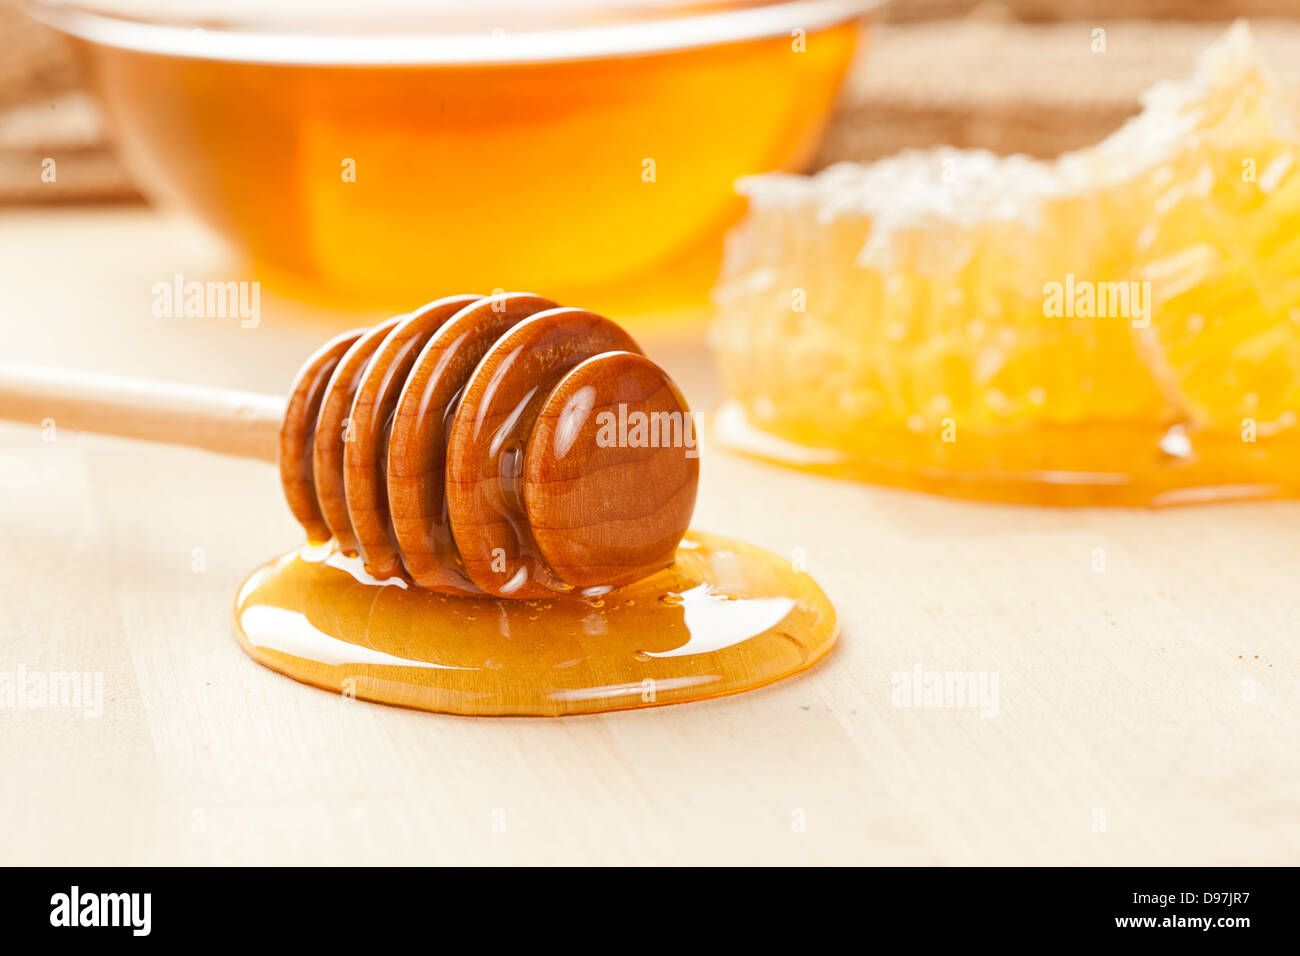 Golden Organic Honey against a back ground - Stock Image